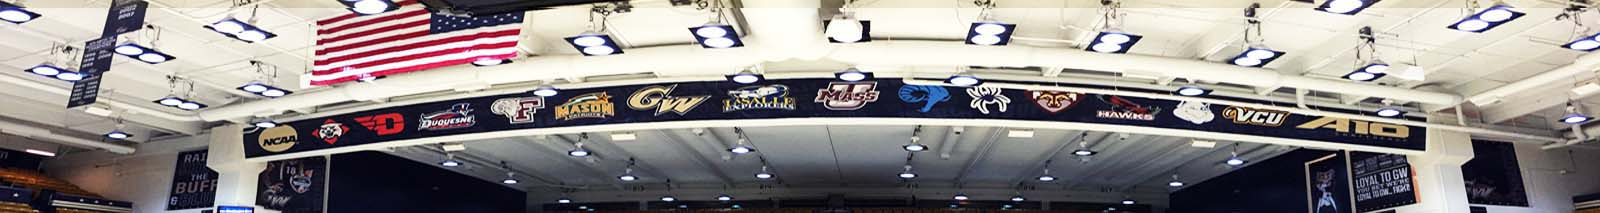 George washington university large banners